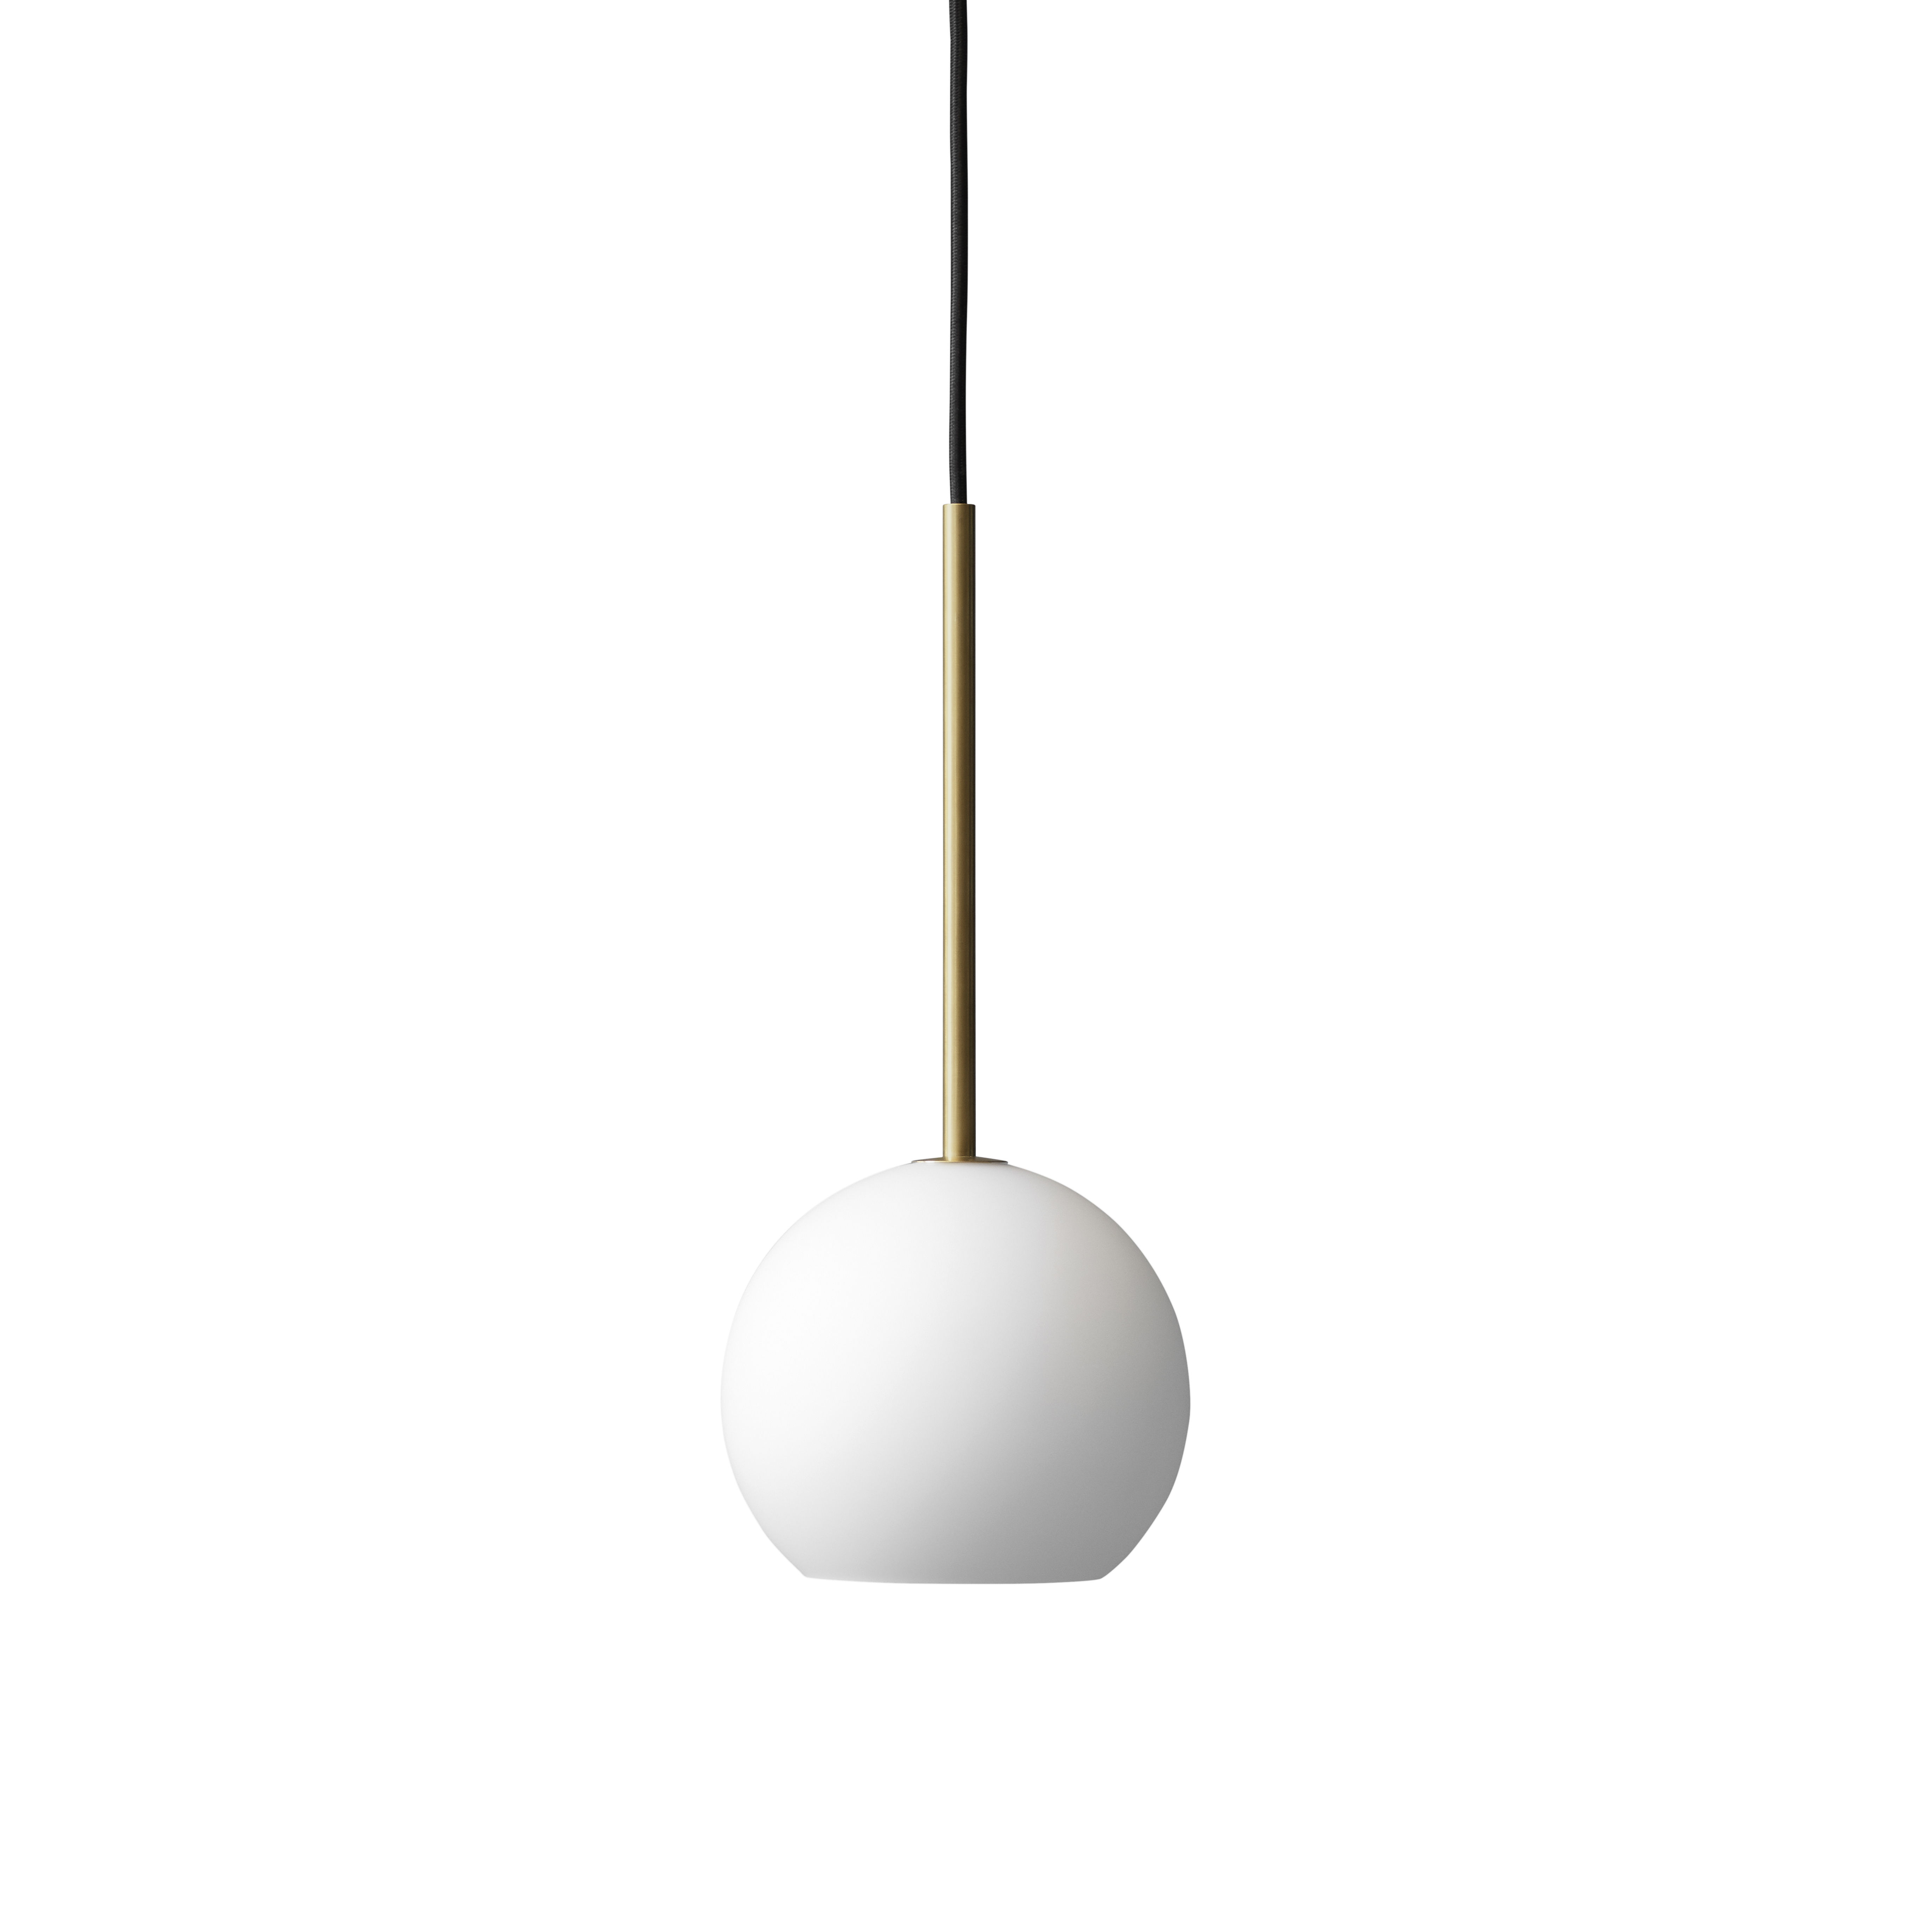 Lighting - Pendant Lighting - Ice SR3 Pendant - / Ø 14 cm - Glass by &tradition - White / Brass - Brass, Fabric, Mouth blown glass